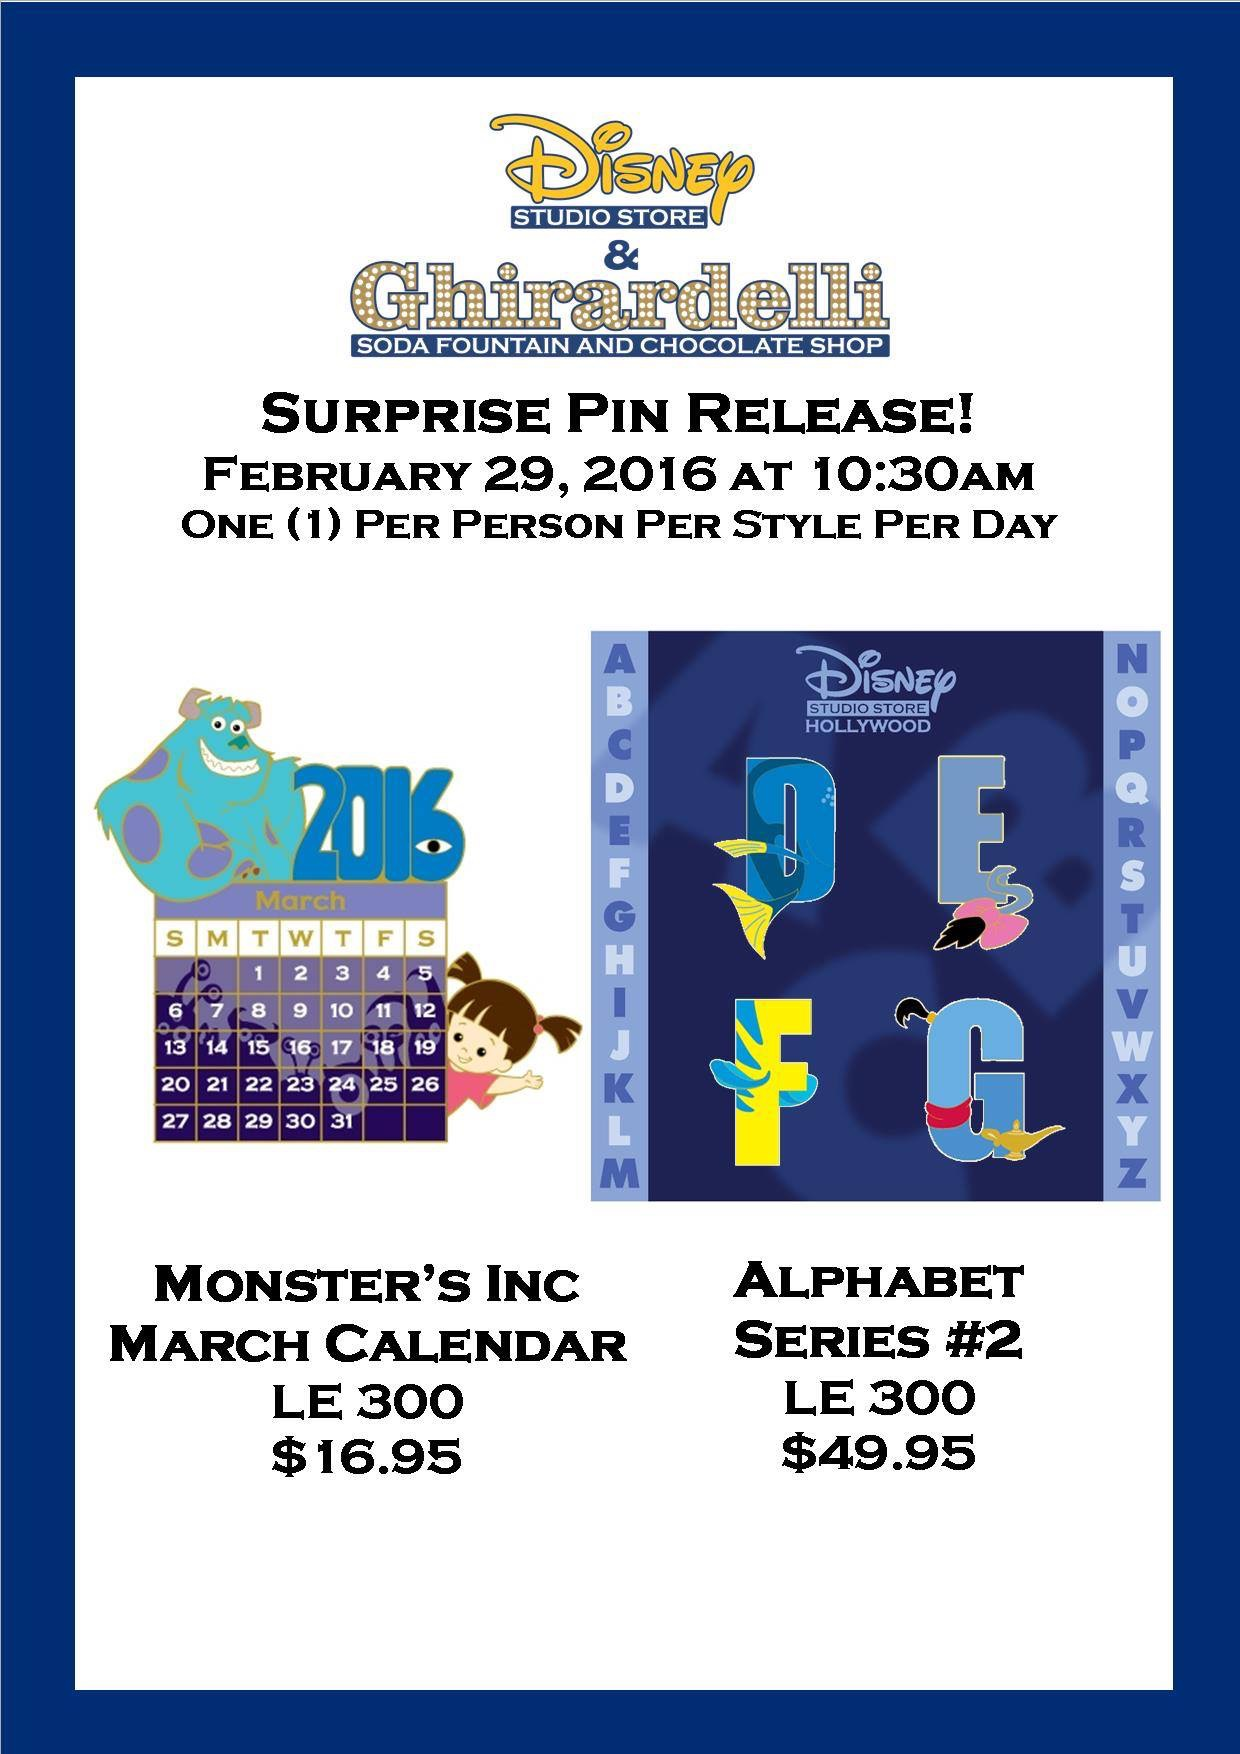 Two Surprise Pins Released At The Disney Studio Store